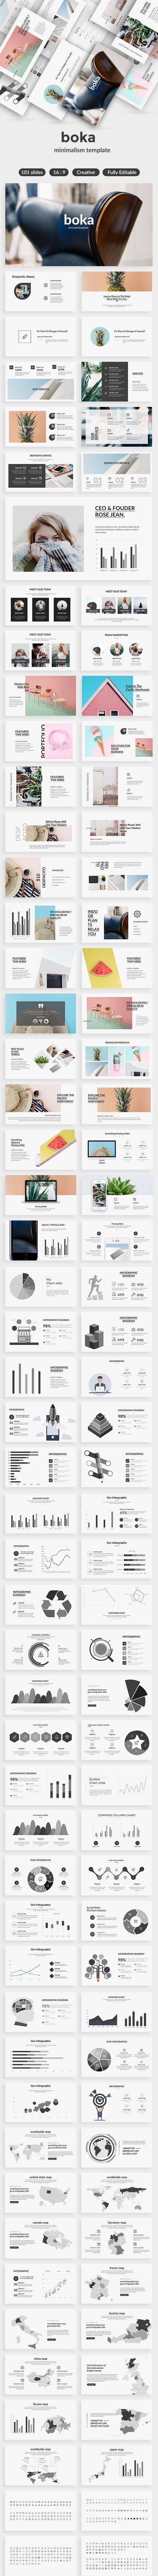 Boka Minimal Google Slide Template - Google Slides Presentation Templates